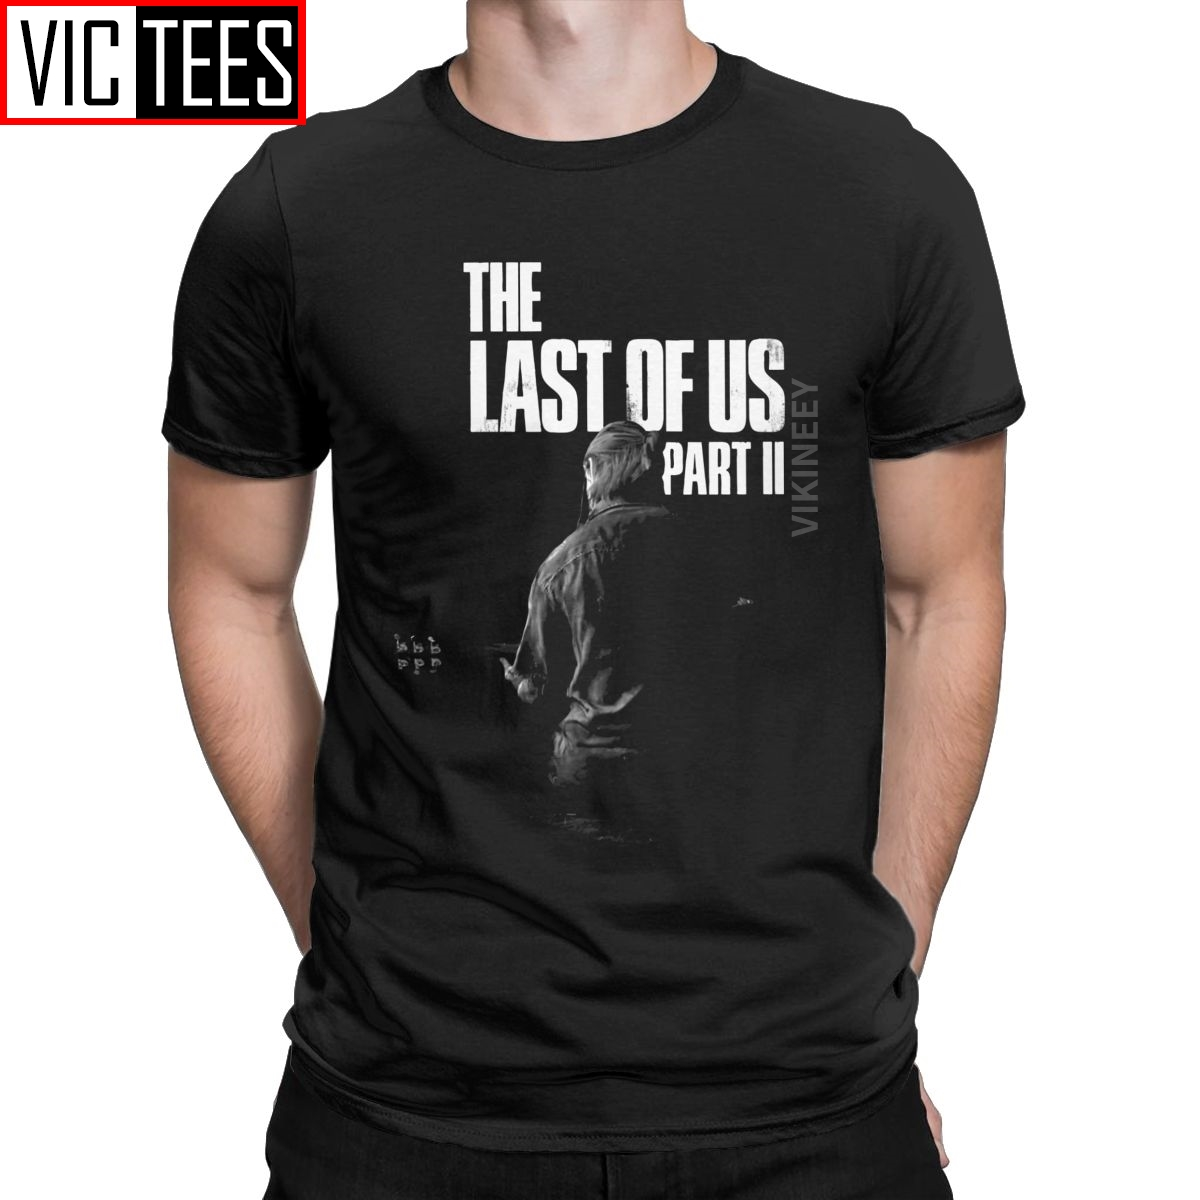 The Last Of Us Winter Song Tshirt Men Pure Cotton T-Shirt Ellie Fireflies Joel Tlou Video Game Oversized image